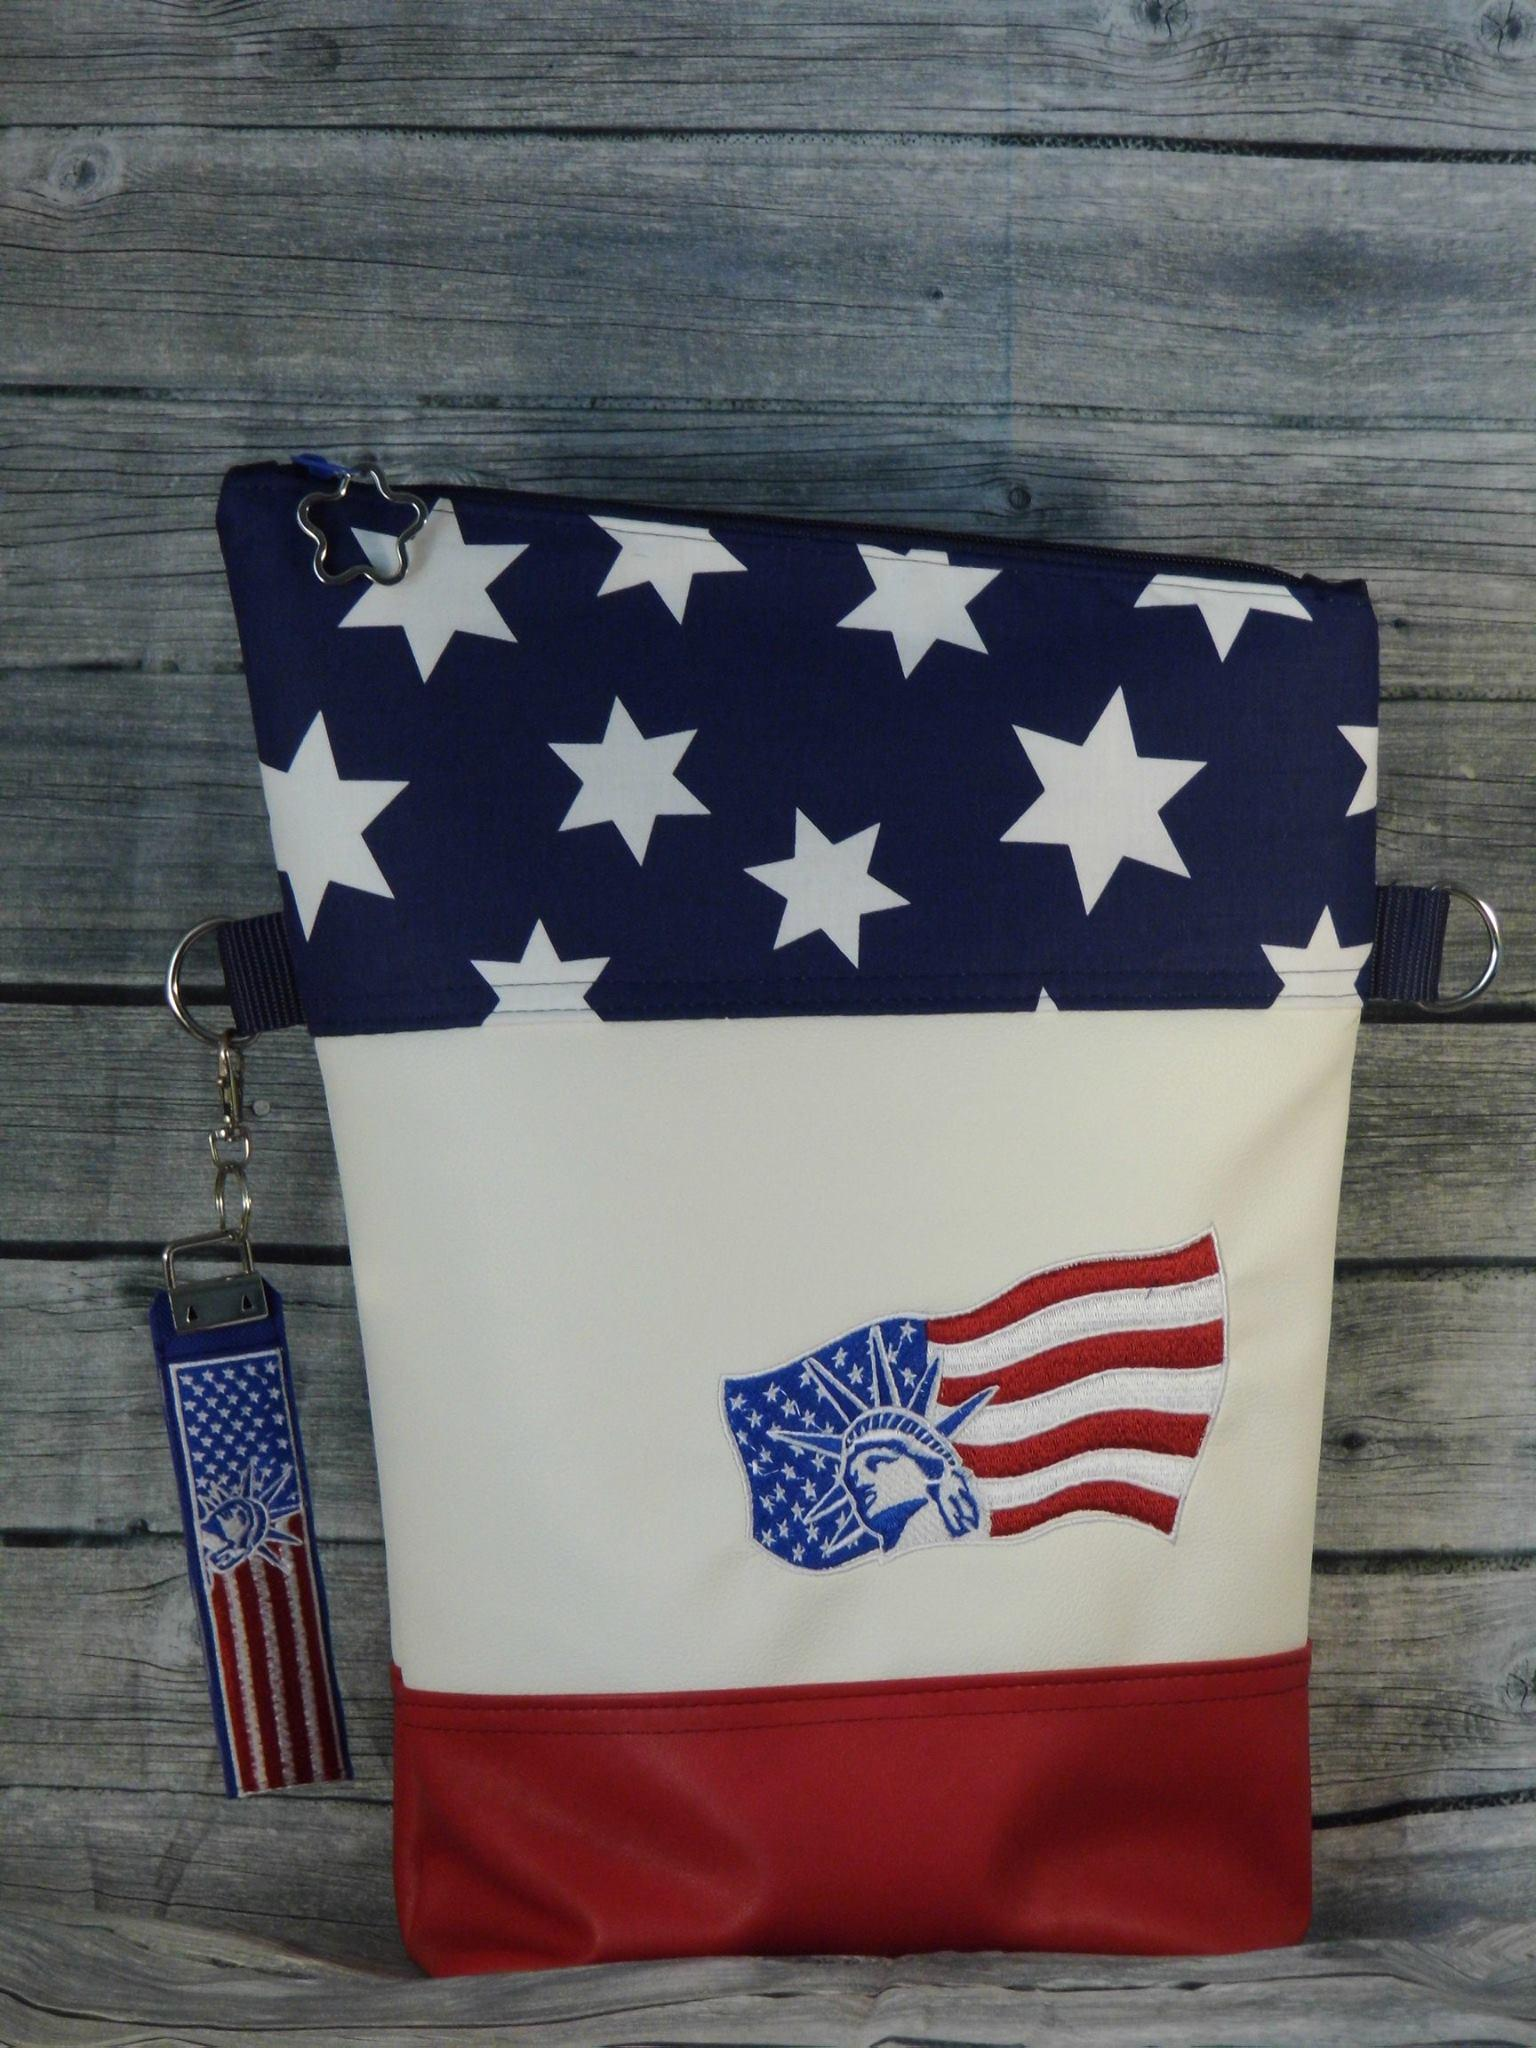 Bag with American flag embroidery design